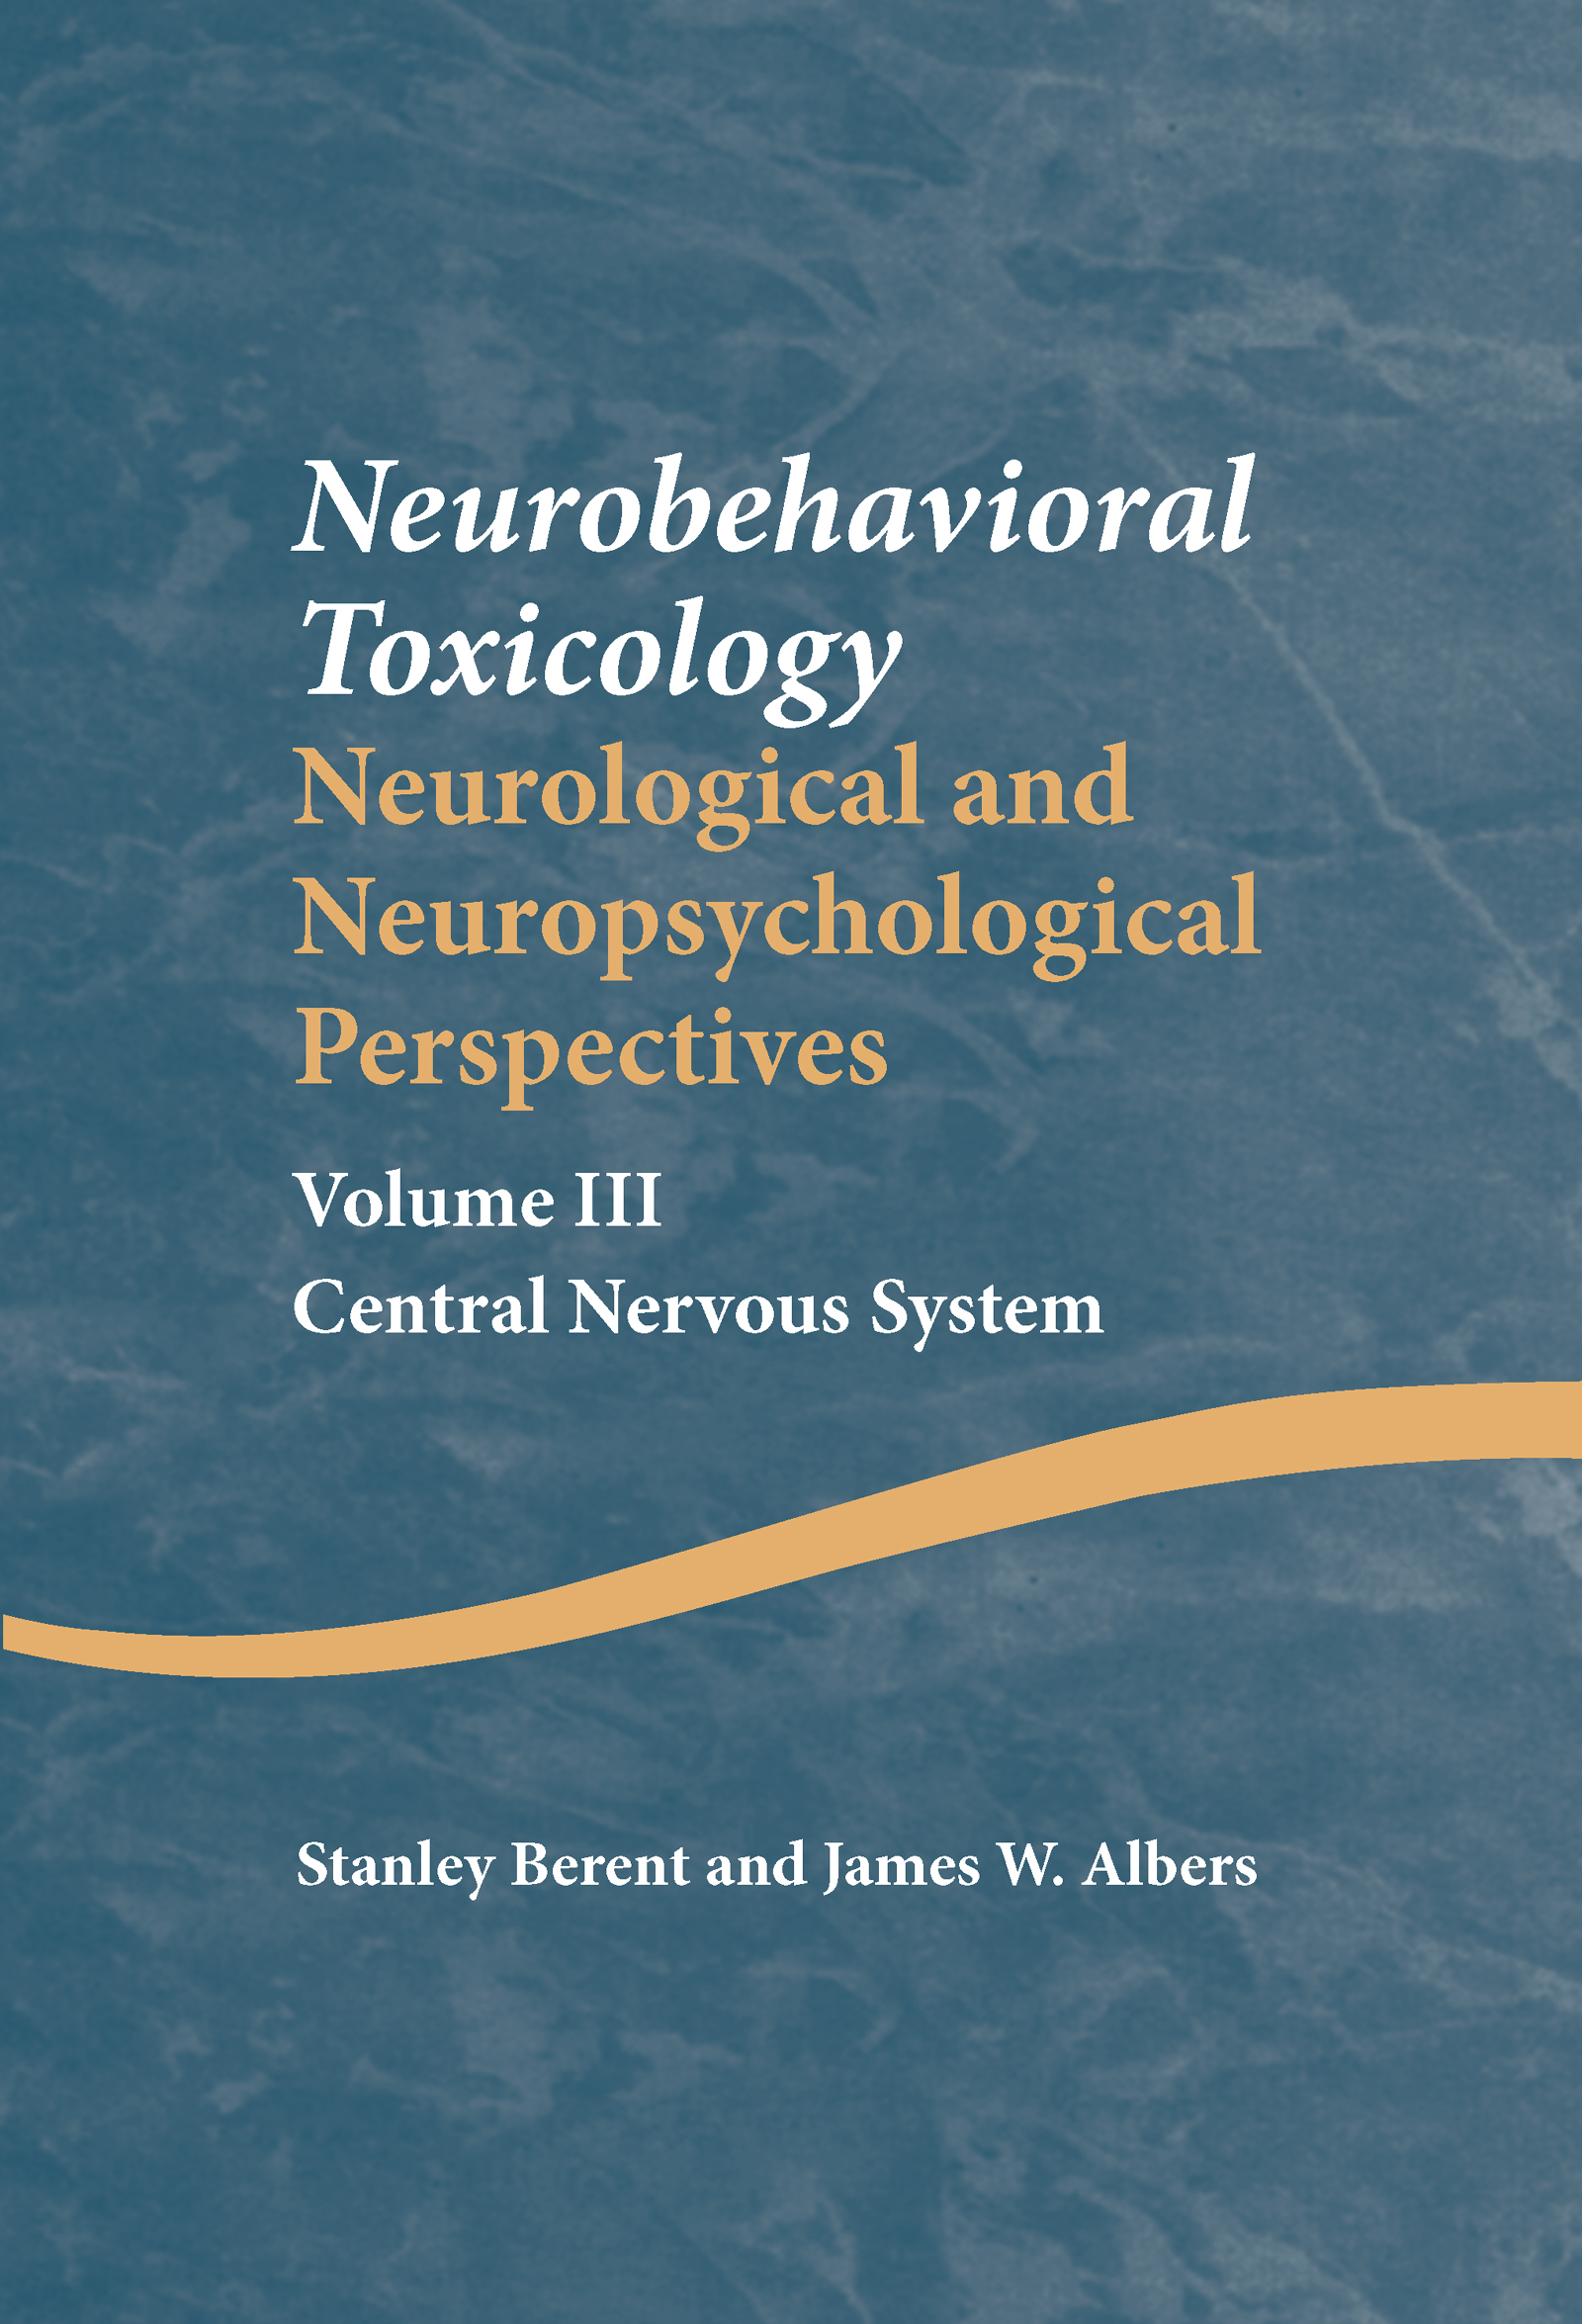 Neurobehavioral Toxicology: Neurological and Neuropsychological Perspectives, Volume III: Central Nervous System (Hardback) book cover